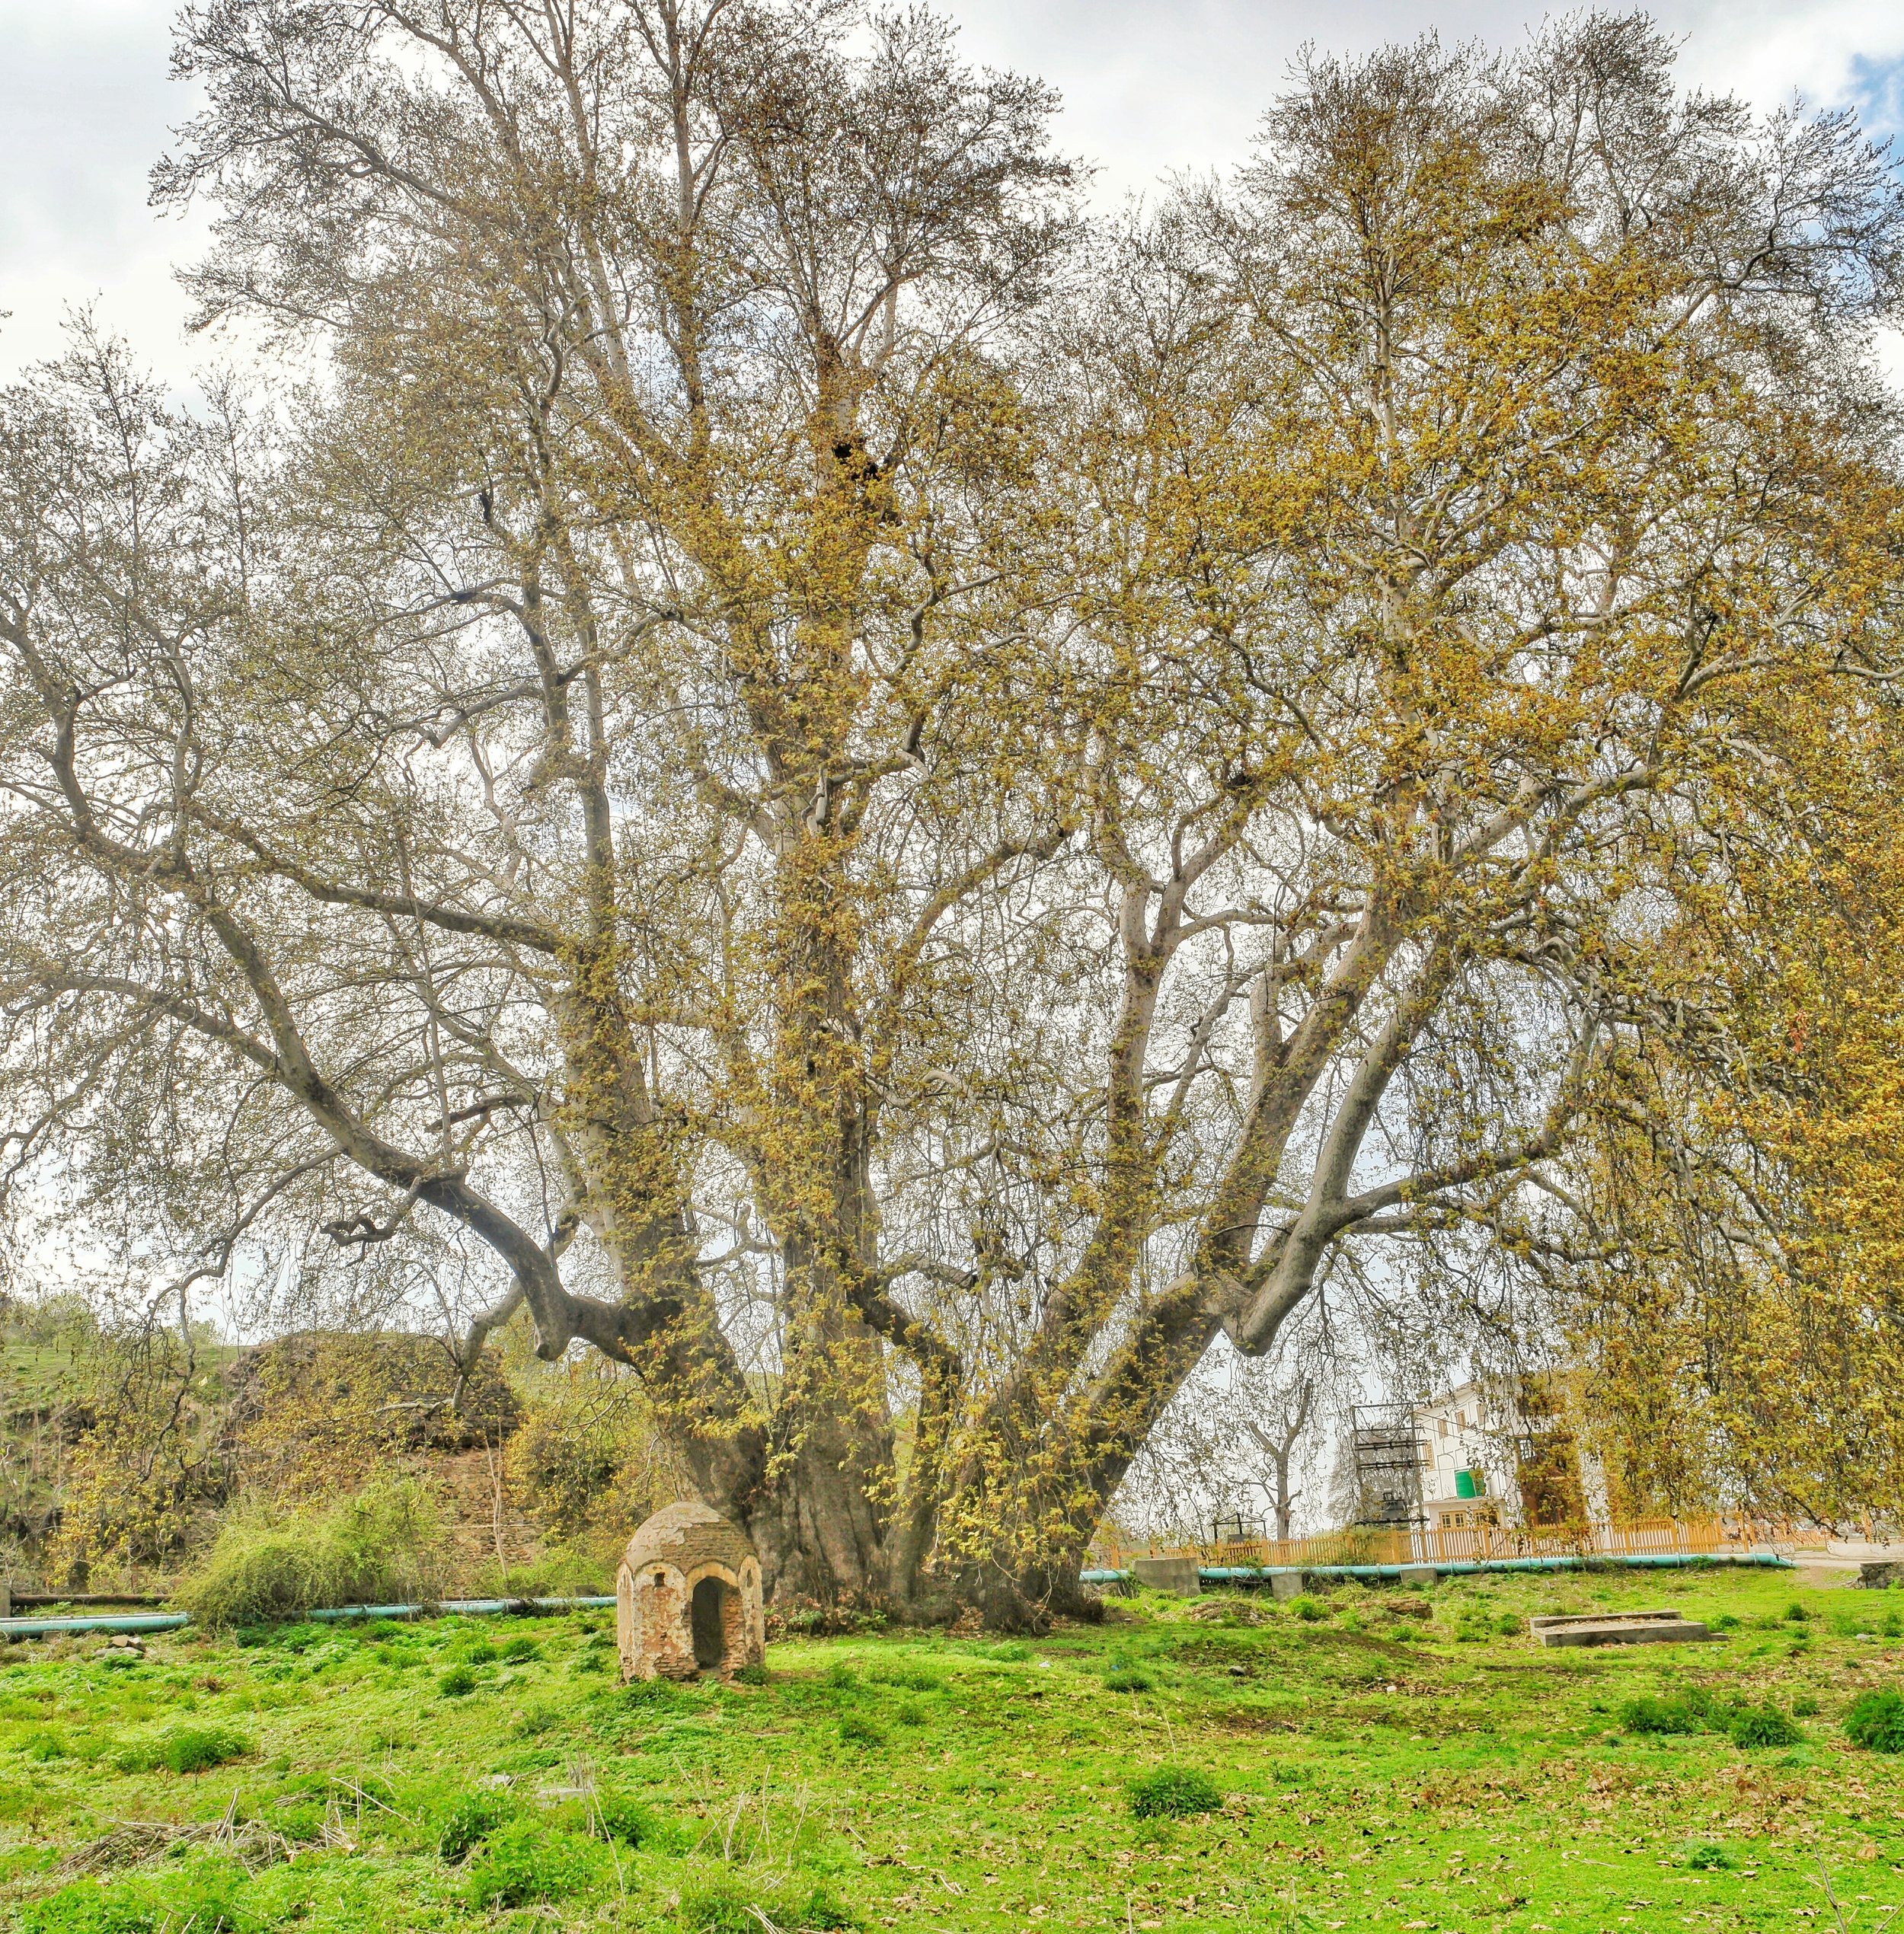 An massive old Chinar by the Pokhribal Lake with an ancient structure. Next to the Chinar is a crematorium used by the Sikh families living in this area.